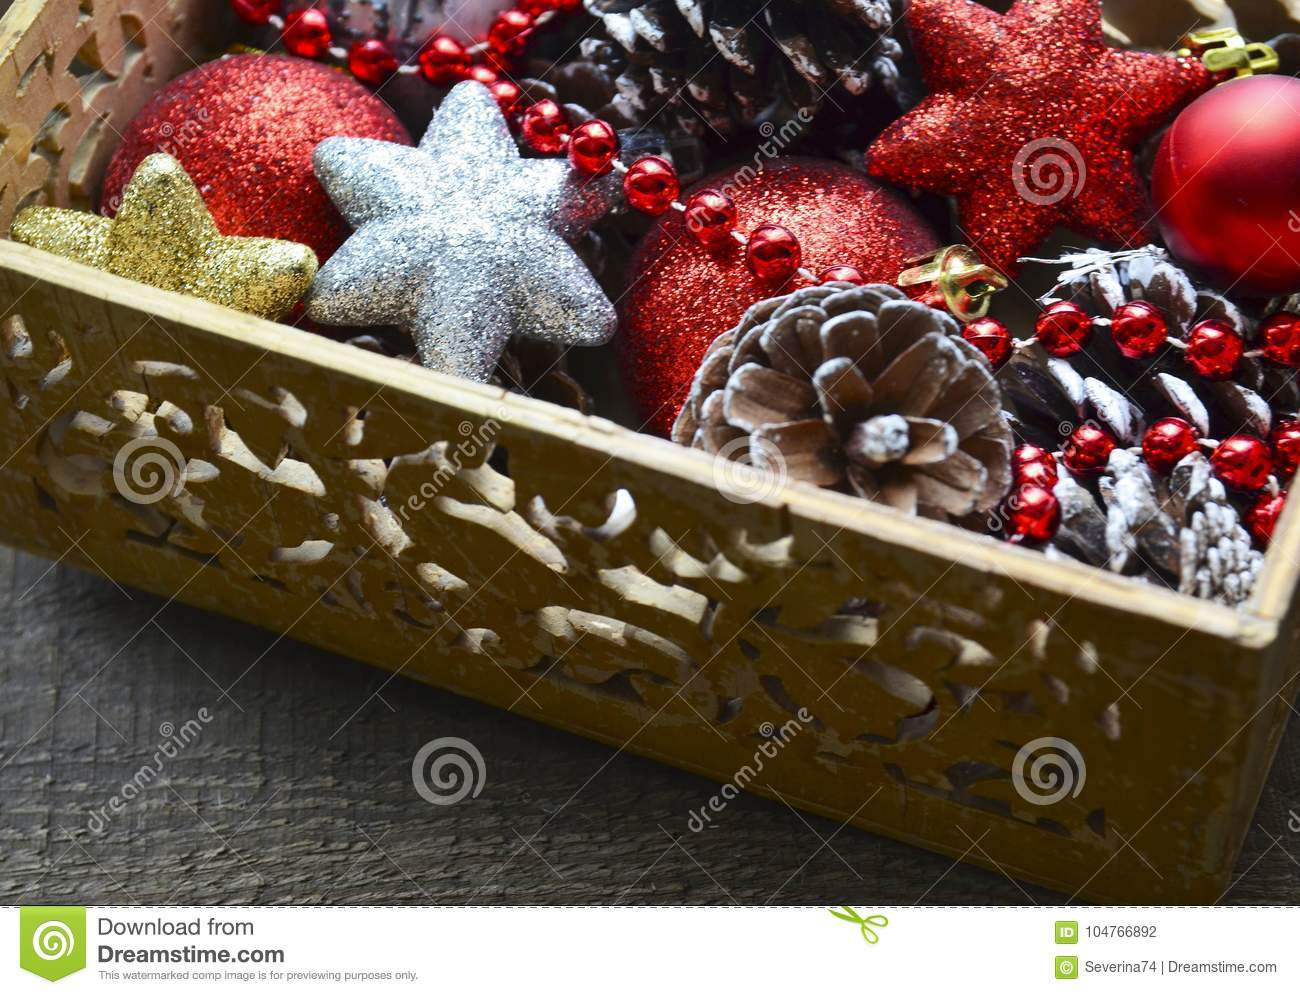 download christmas decorations in vintage wooden box as a preparation for decorating the xmas tree - Wooden Box Christmas Decorations